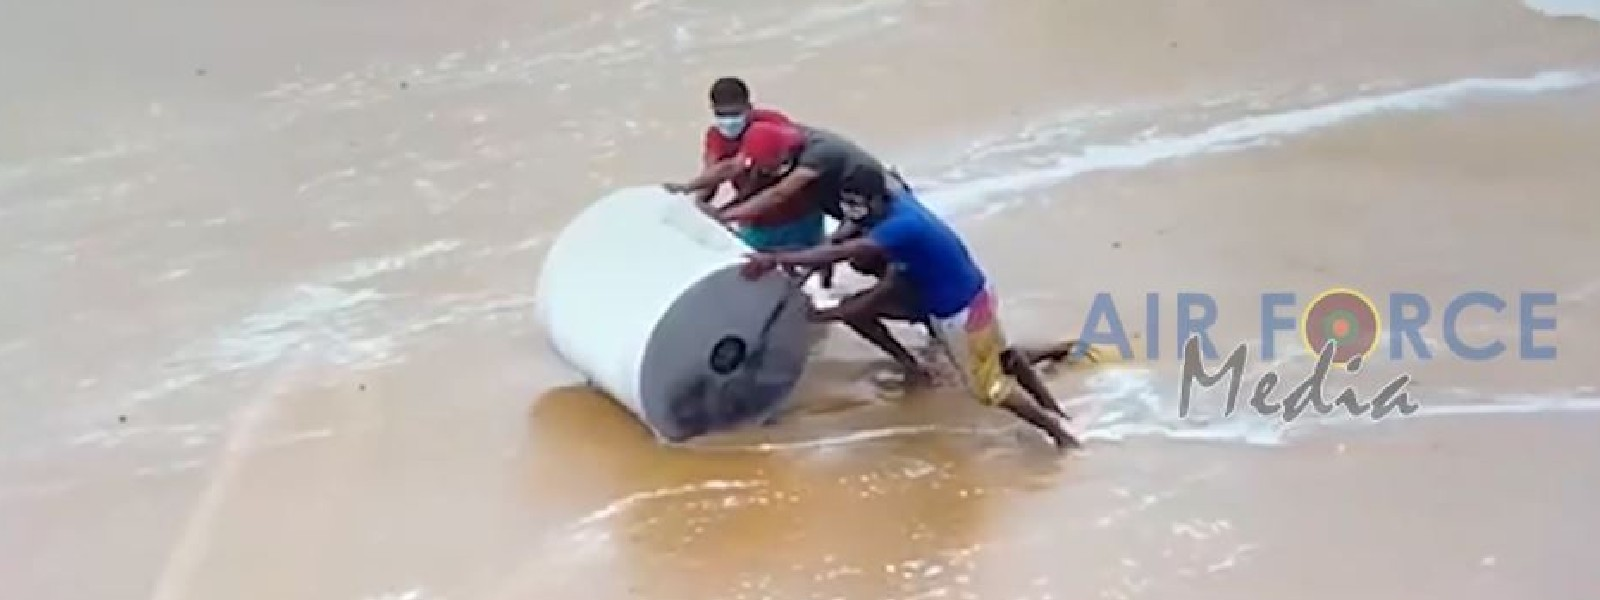 (VIDEO) Air Force drops 850 kg of DCP on burning ship; people rush to collect debris